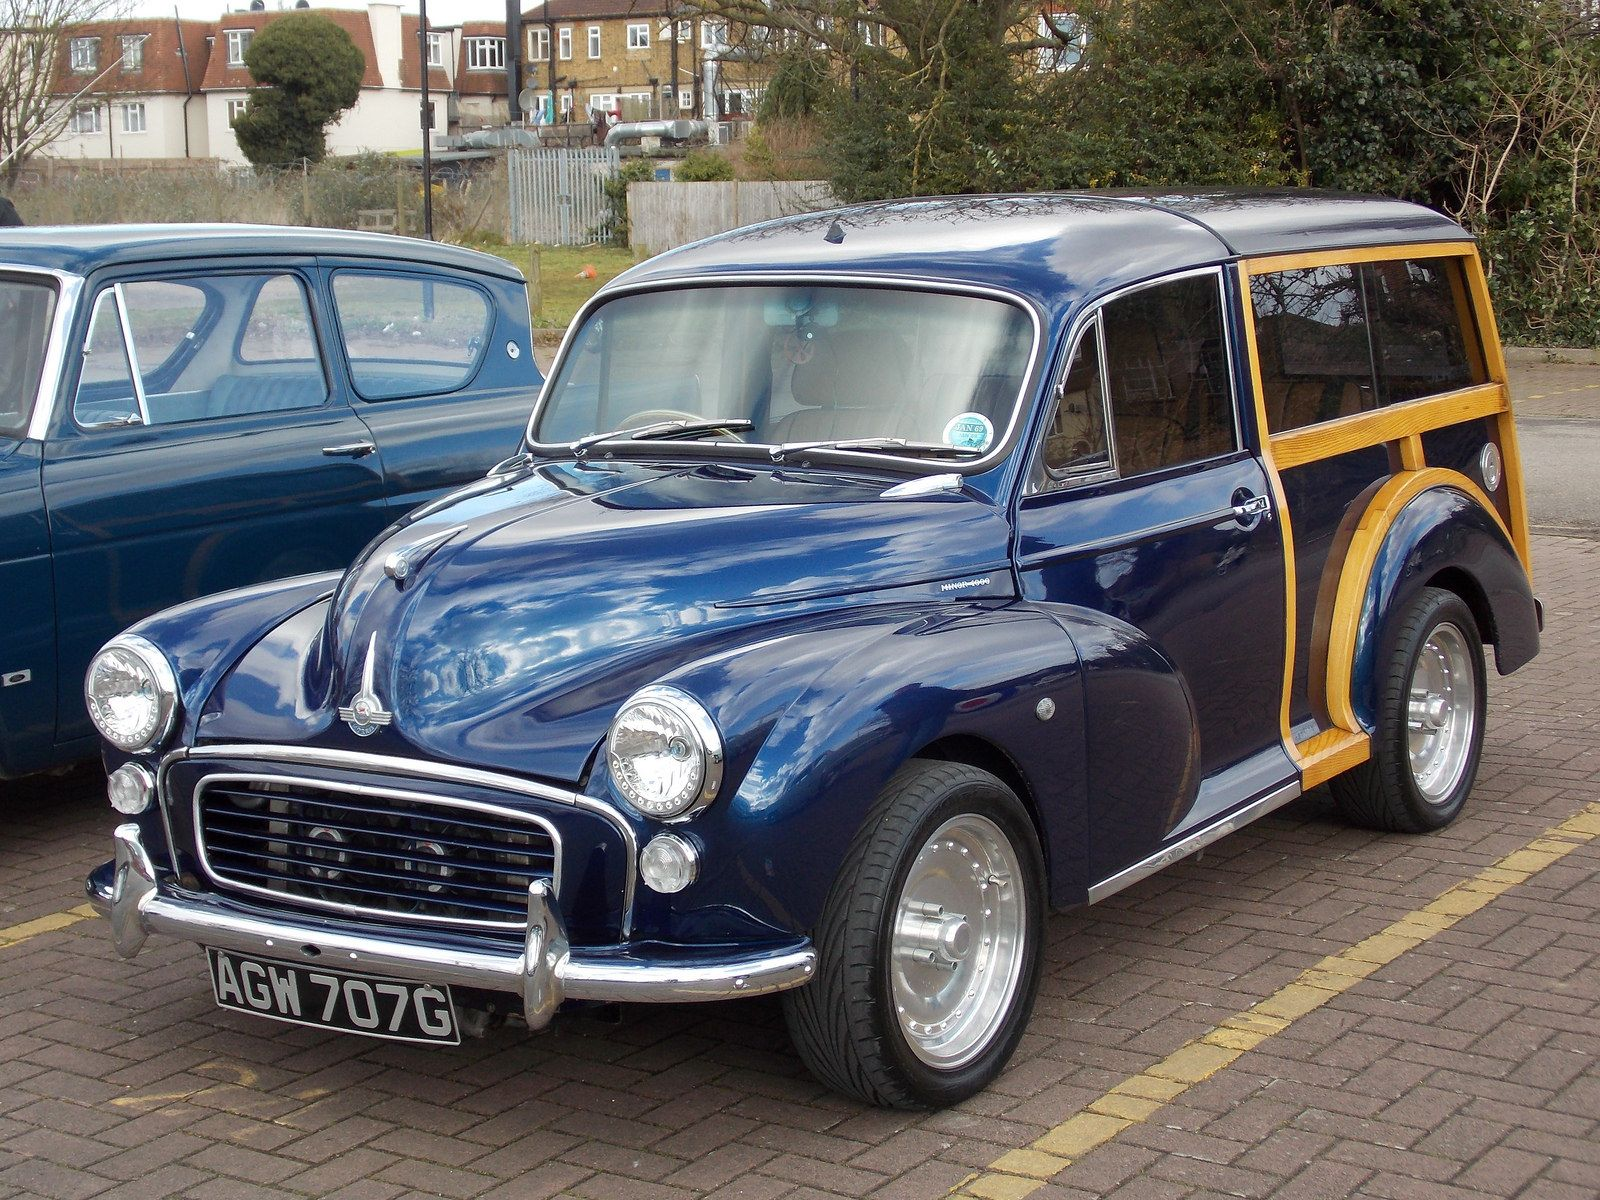 c.1969 Morris Minor 1000 Traveller custom | Flickr - Photo Sharing!